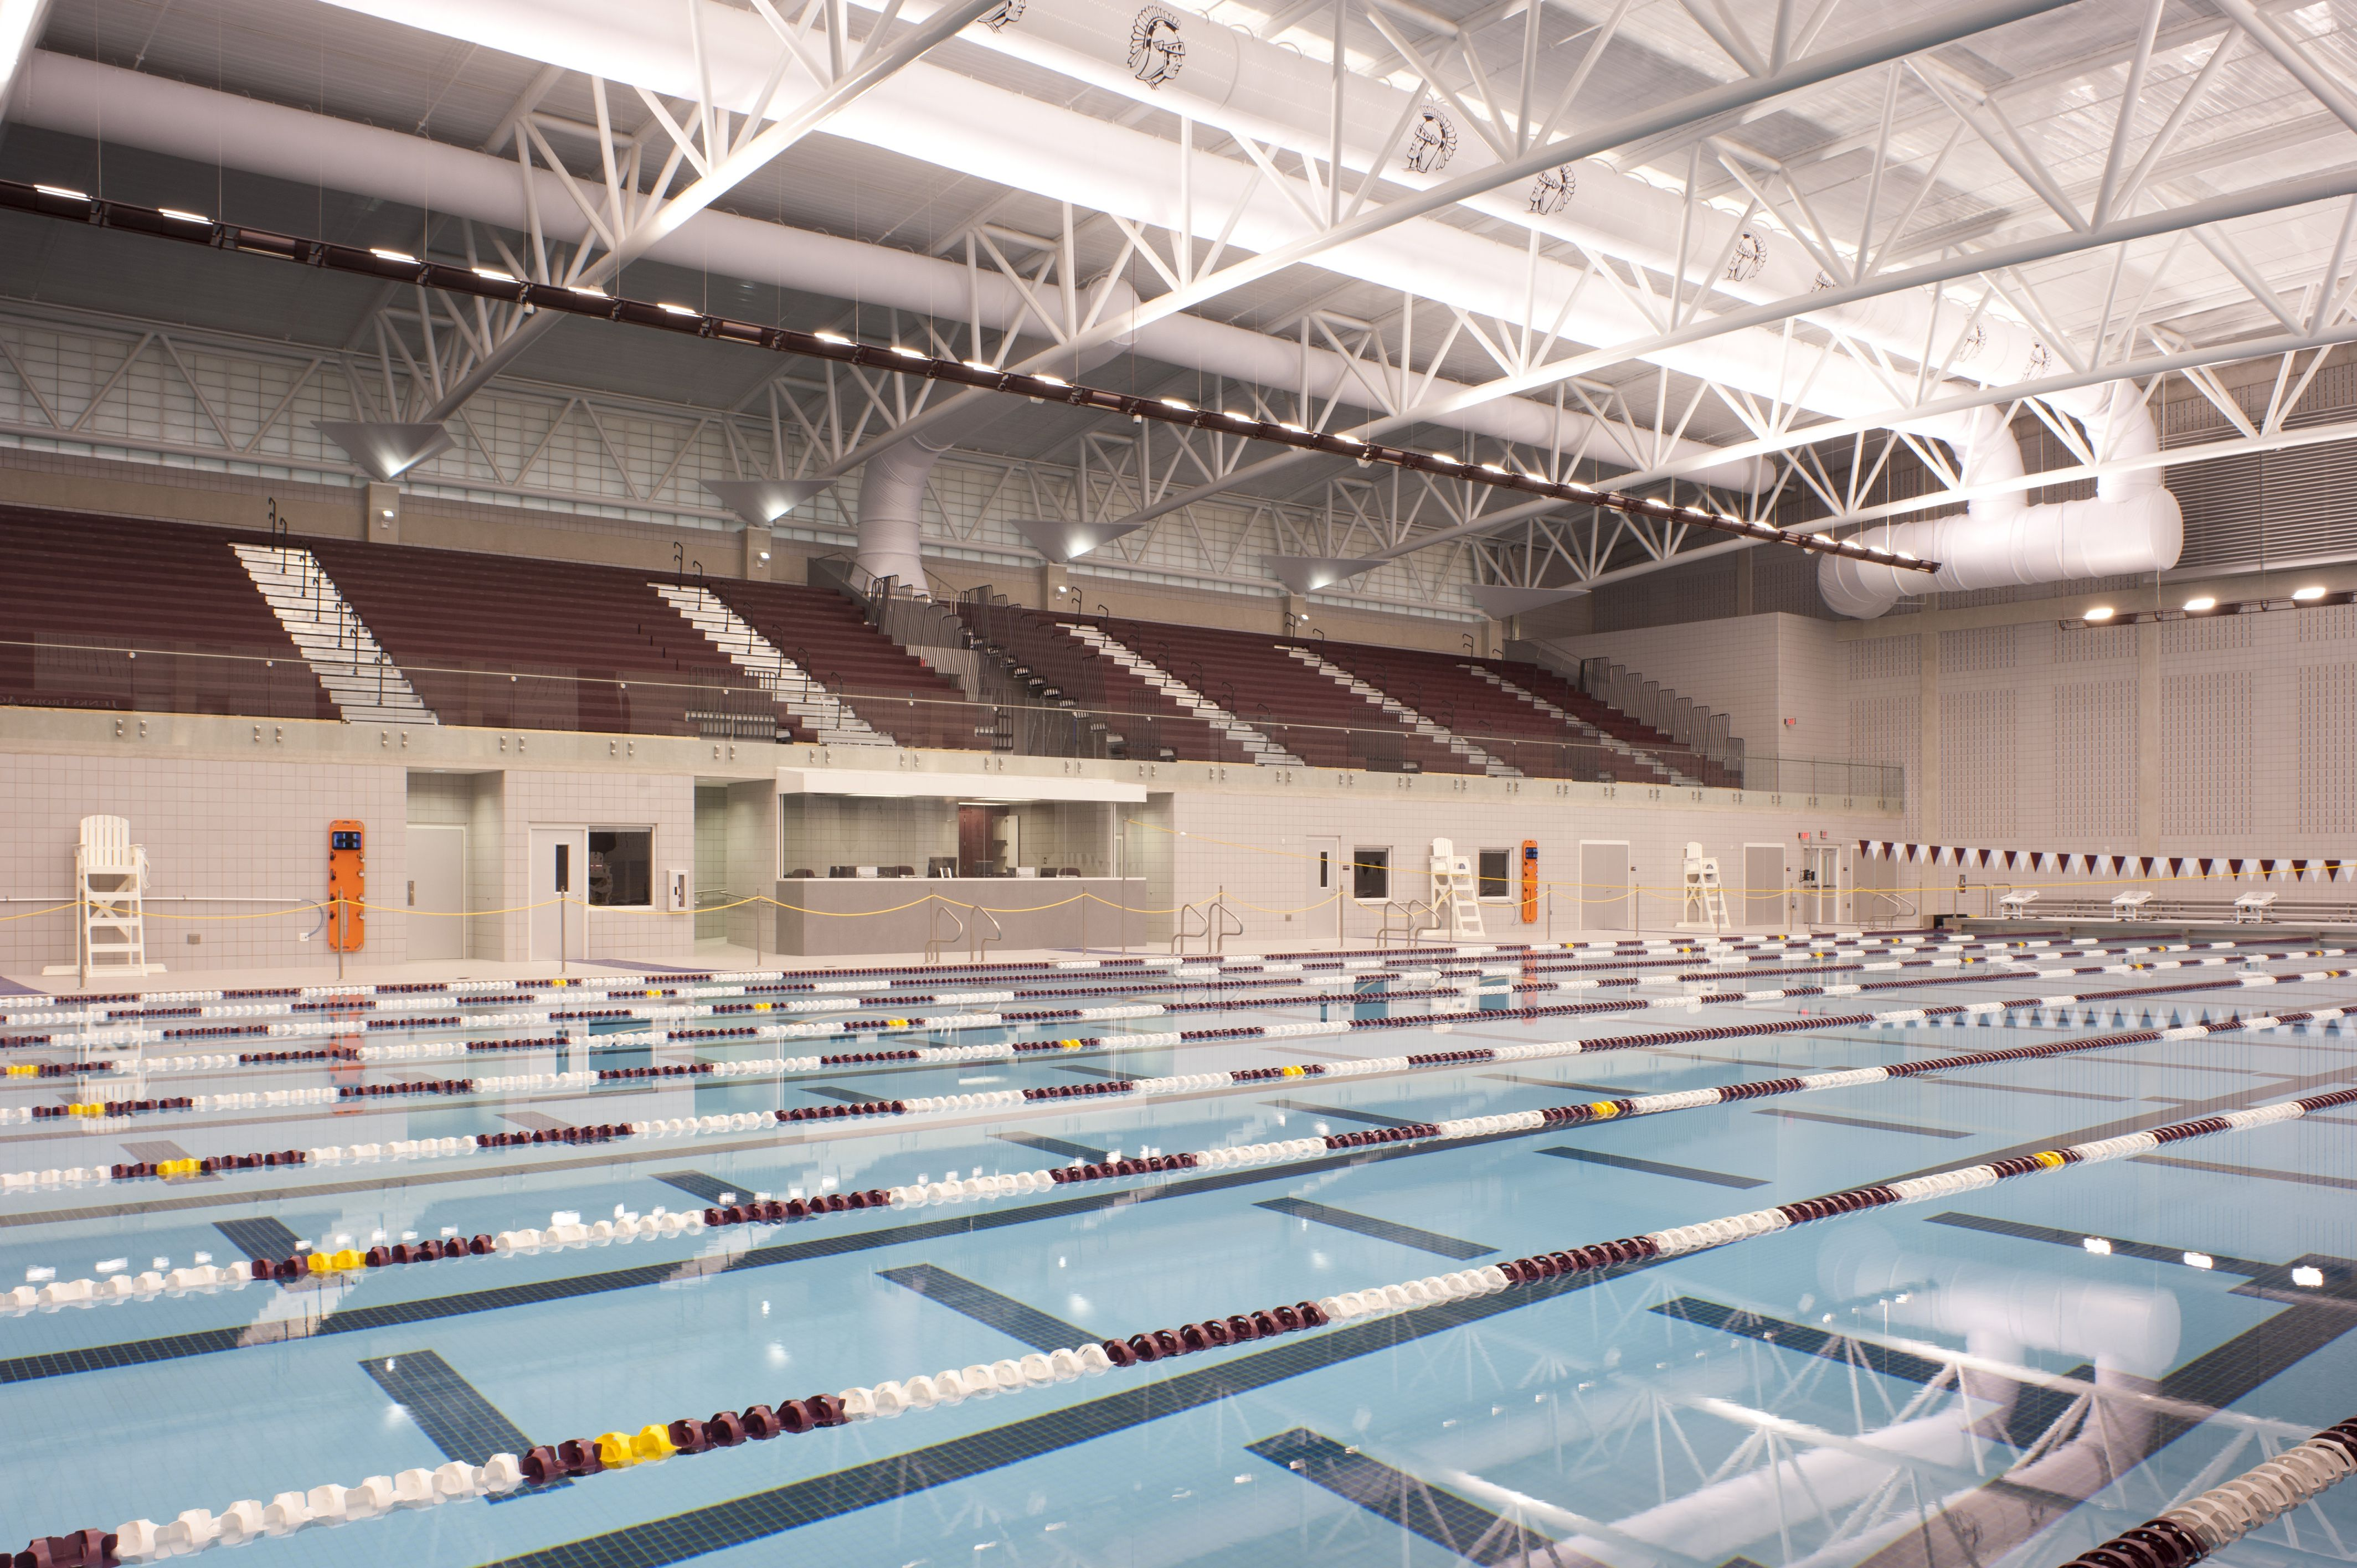 A 1200 Seat Spectator Seating Area Is A Key Feature For This Competition Pool For Jenks Public Schools Design Stadium Architecture Stadium Design Gym Interior